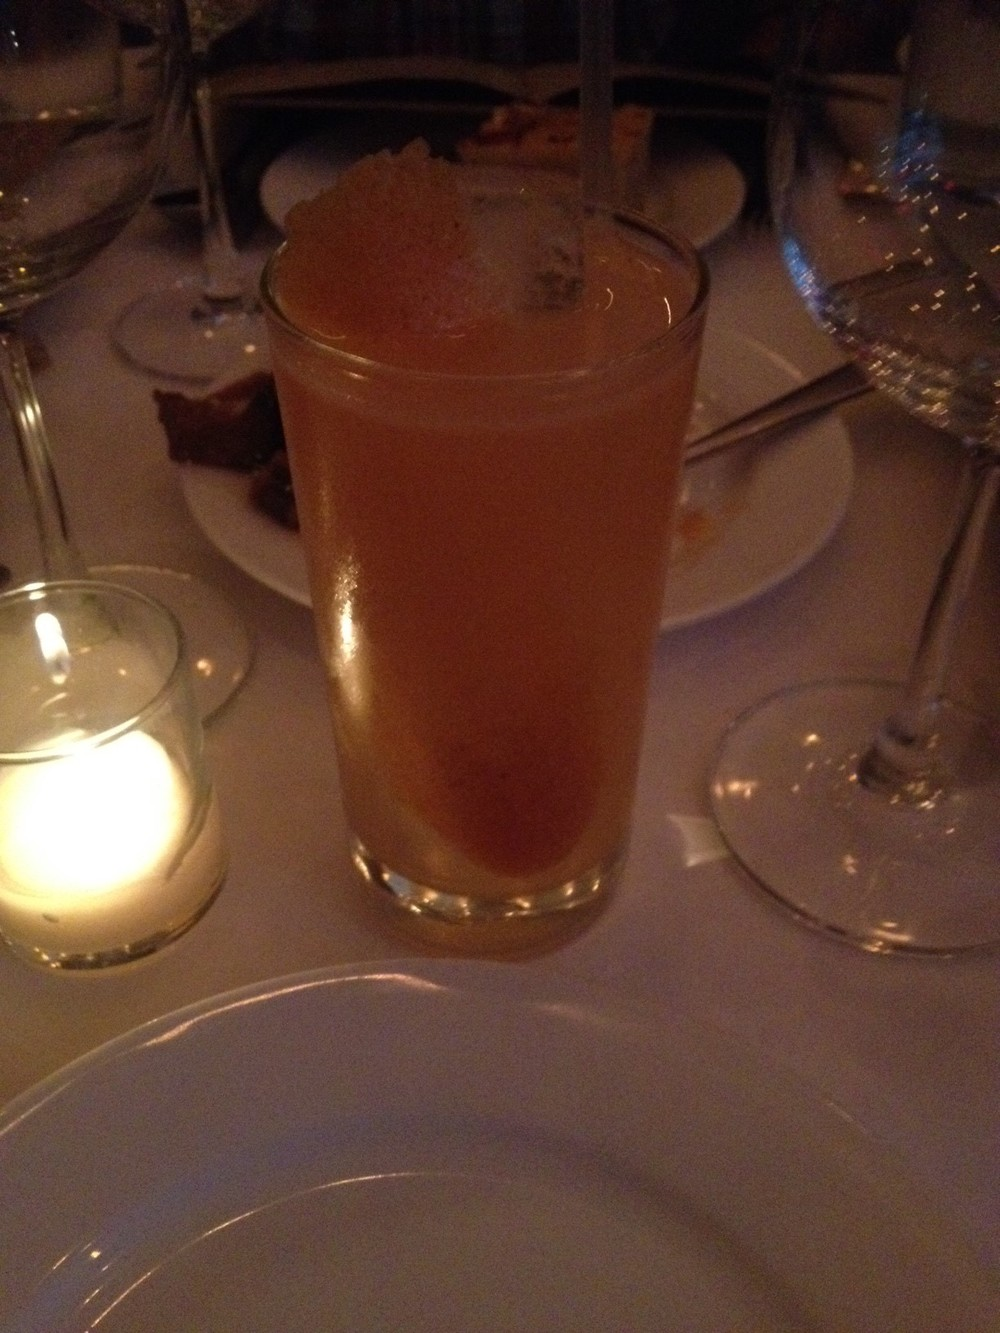 Grapefruit & Gin cocktail - one of the only meal highlights